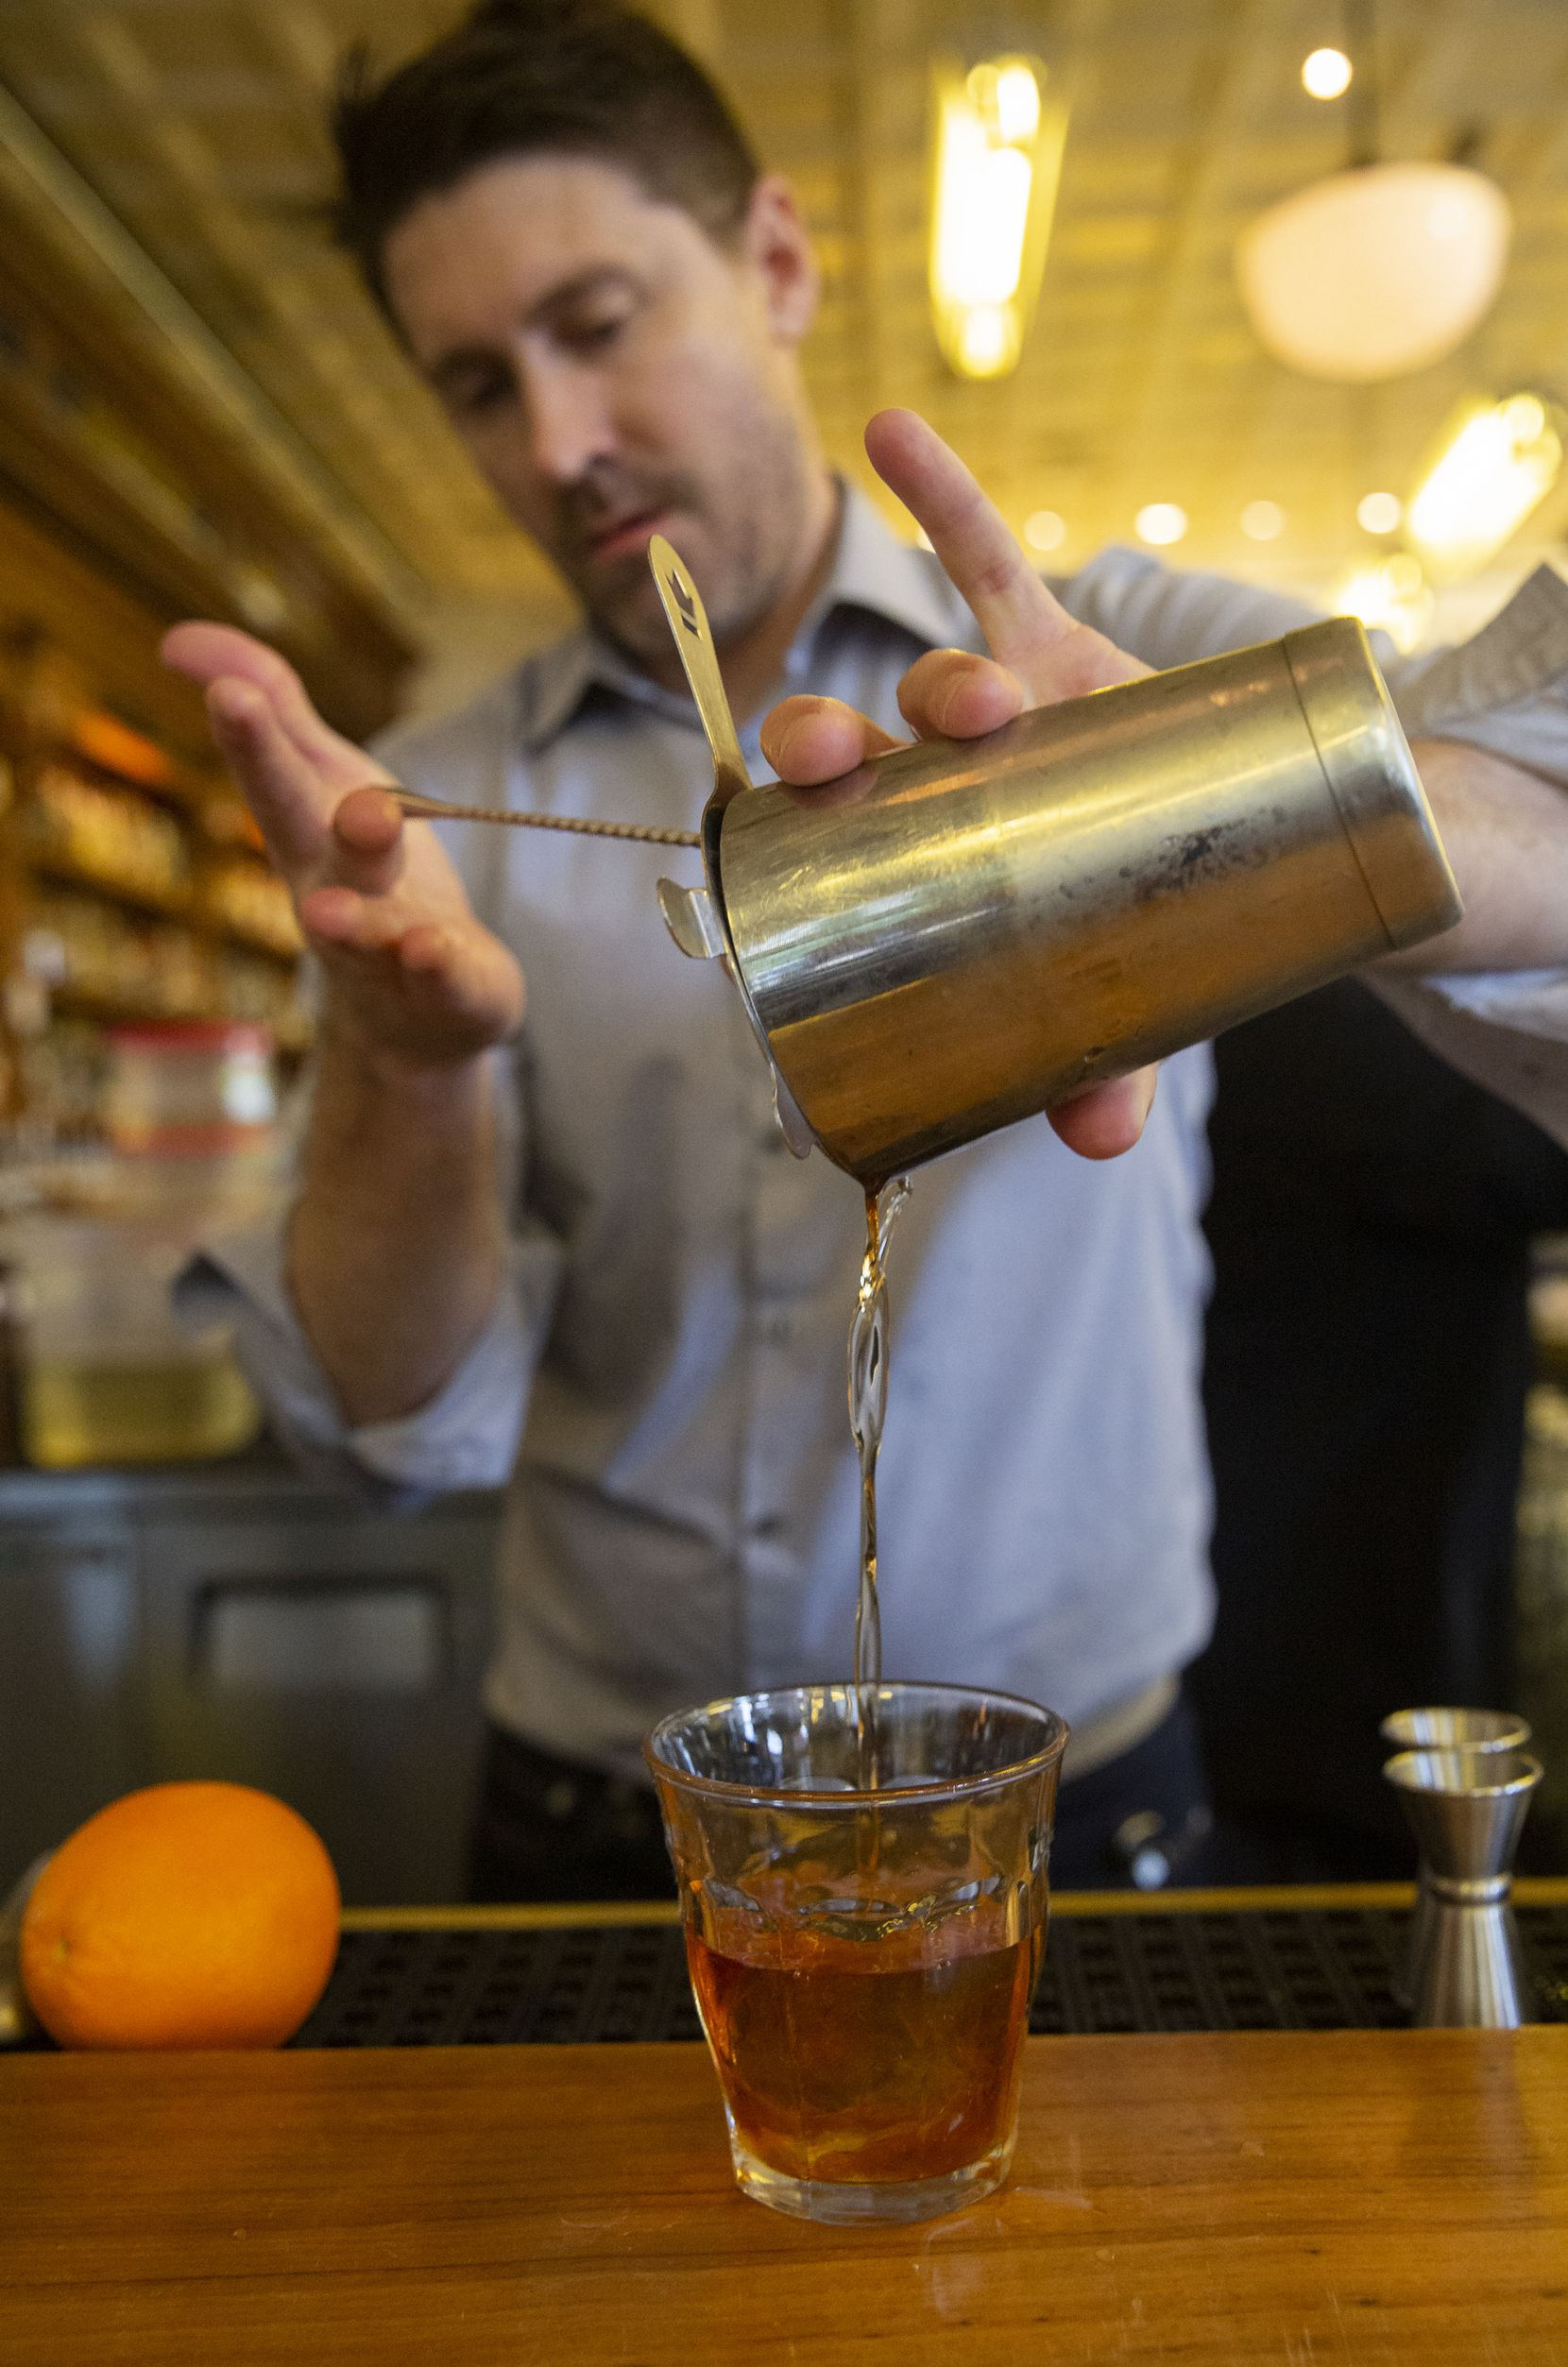 Abraham Bedell pours an old-fashioned made with the Maker's Mark Private Select single barrel spirit at Billy Can Can in Dallas.